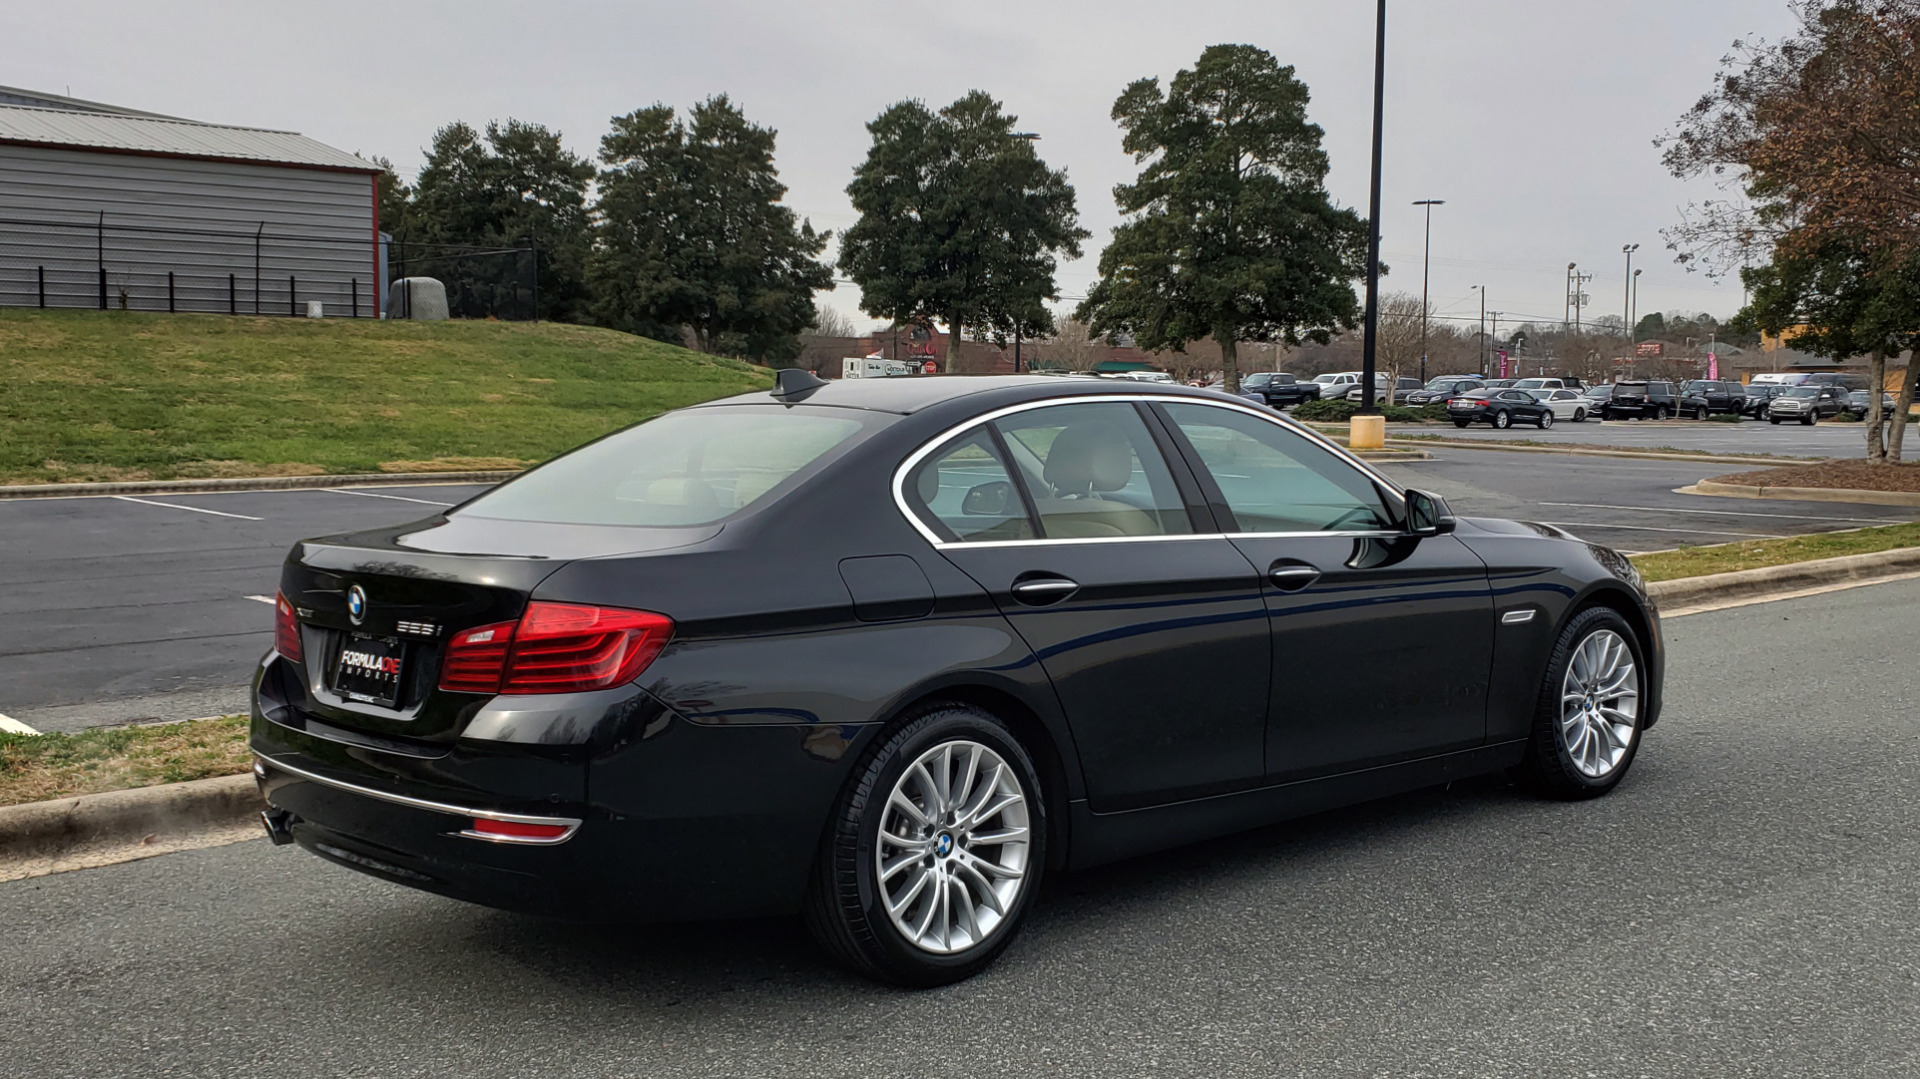 Used 2016 BMW 5 SERIES 528i XDRIVE / PREM PKG / DRVR ASST PLUS / LUXURY / COLD WTHR for sale Sold at Formula Imports in Charlotte NC 28227 9